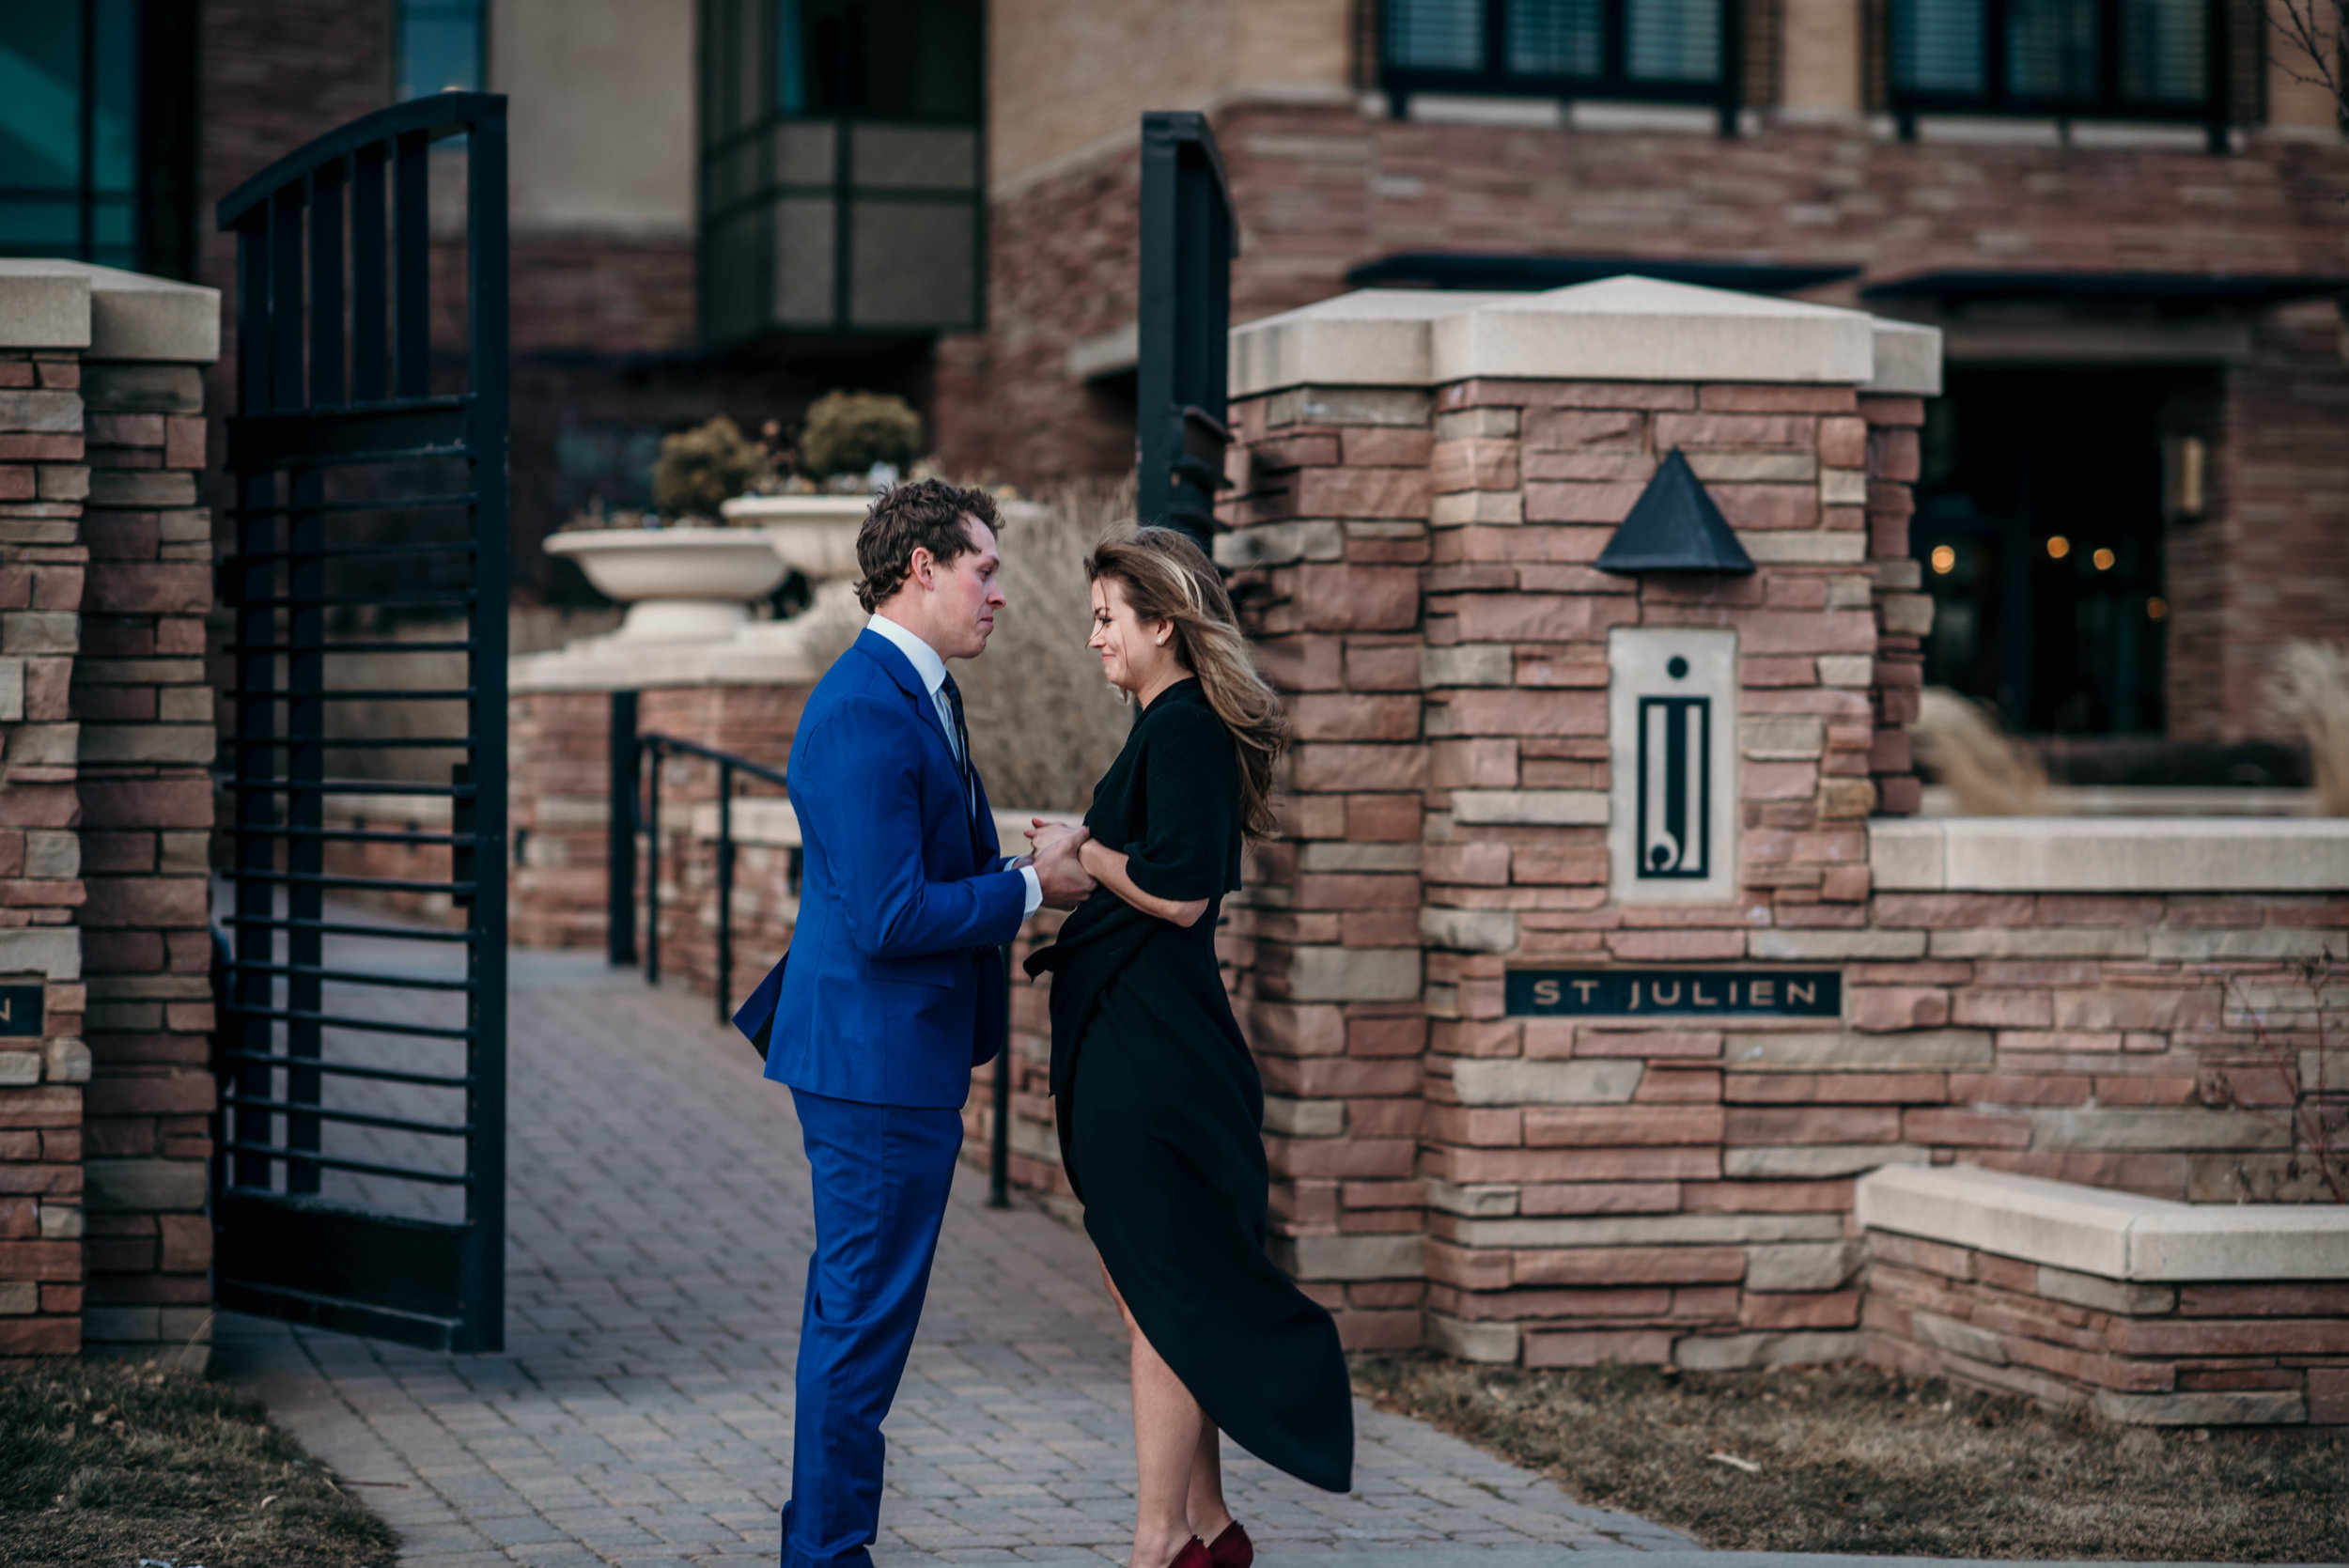 colorado_proposal_photographer_0310.jpg